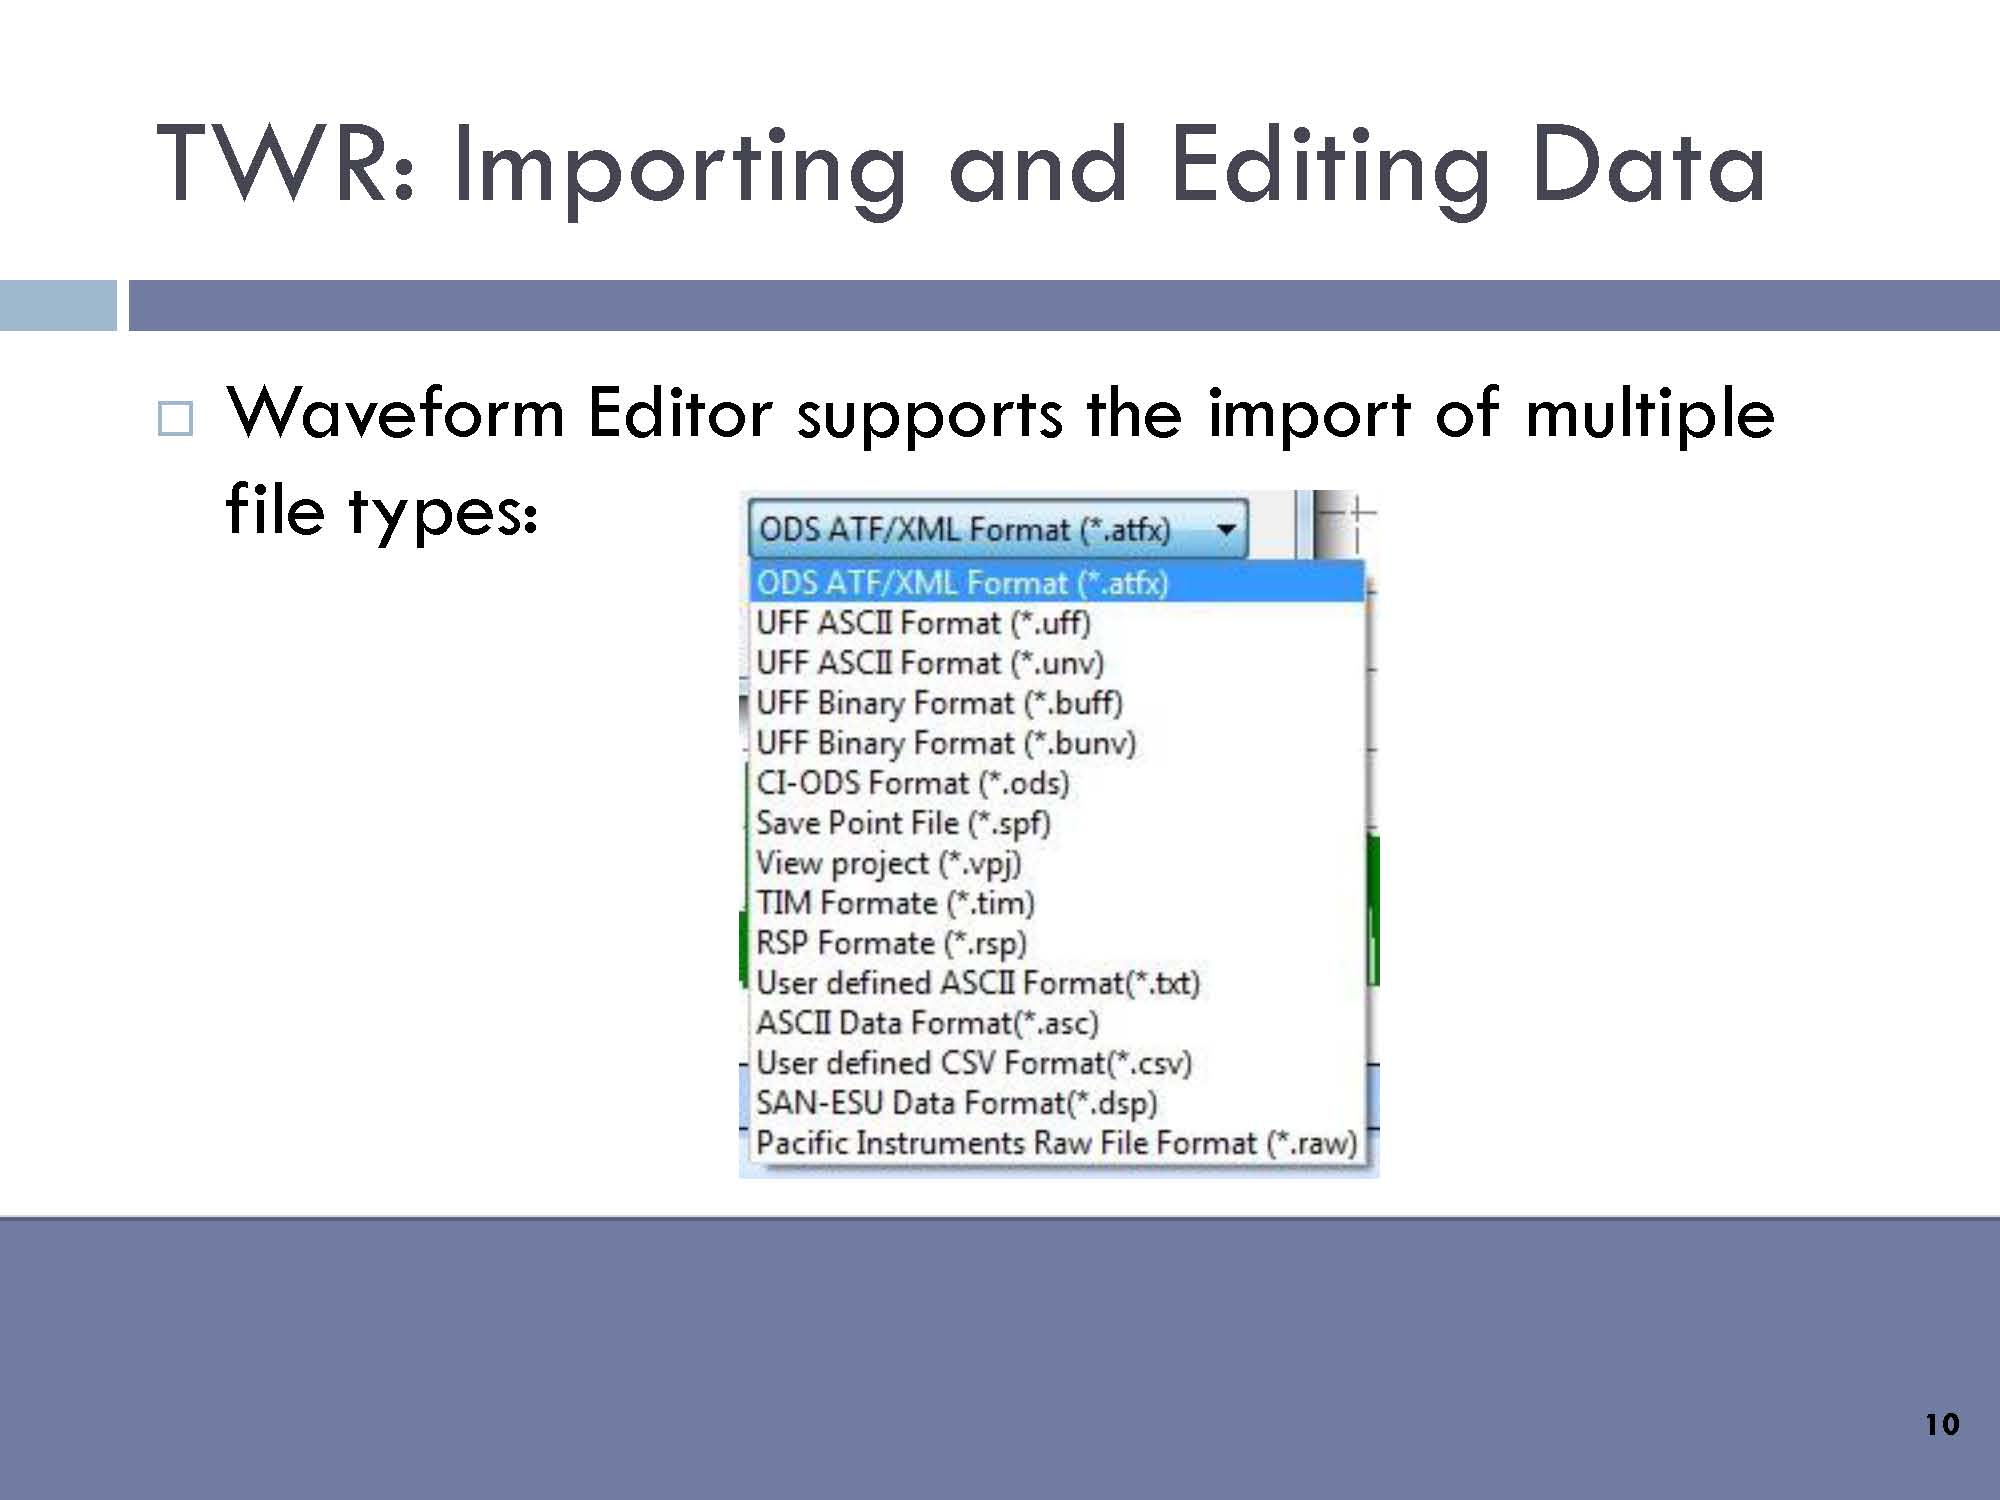 Waveform Editor supports the import of multiple file types, including: ODS ATF/XML (*.atfx), UFF ASCII (*.uff), UFF ASCII (*.unv), UFF Binary (*.buff), CI-ODS (*.ods), Save Point File (*.spf), View project (*.vpj), TIM Formate (*.tim), RSP Formate (*.rsp), User defined ASCII Format (*.txt), SAN-ESU Data Format (*.dsp), Pacific Instruments Raw File (*.raw).